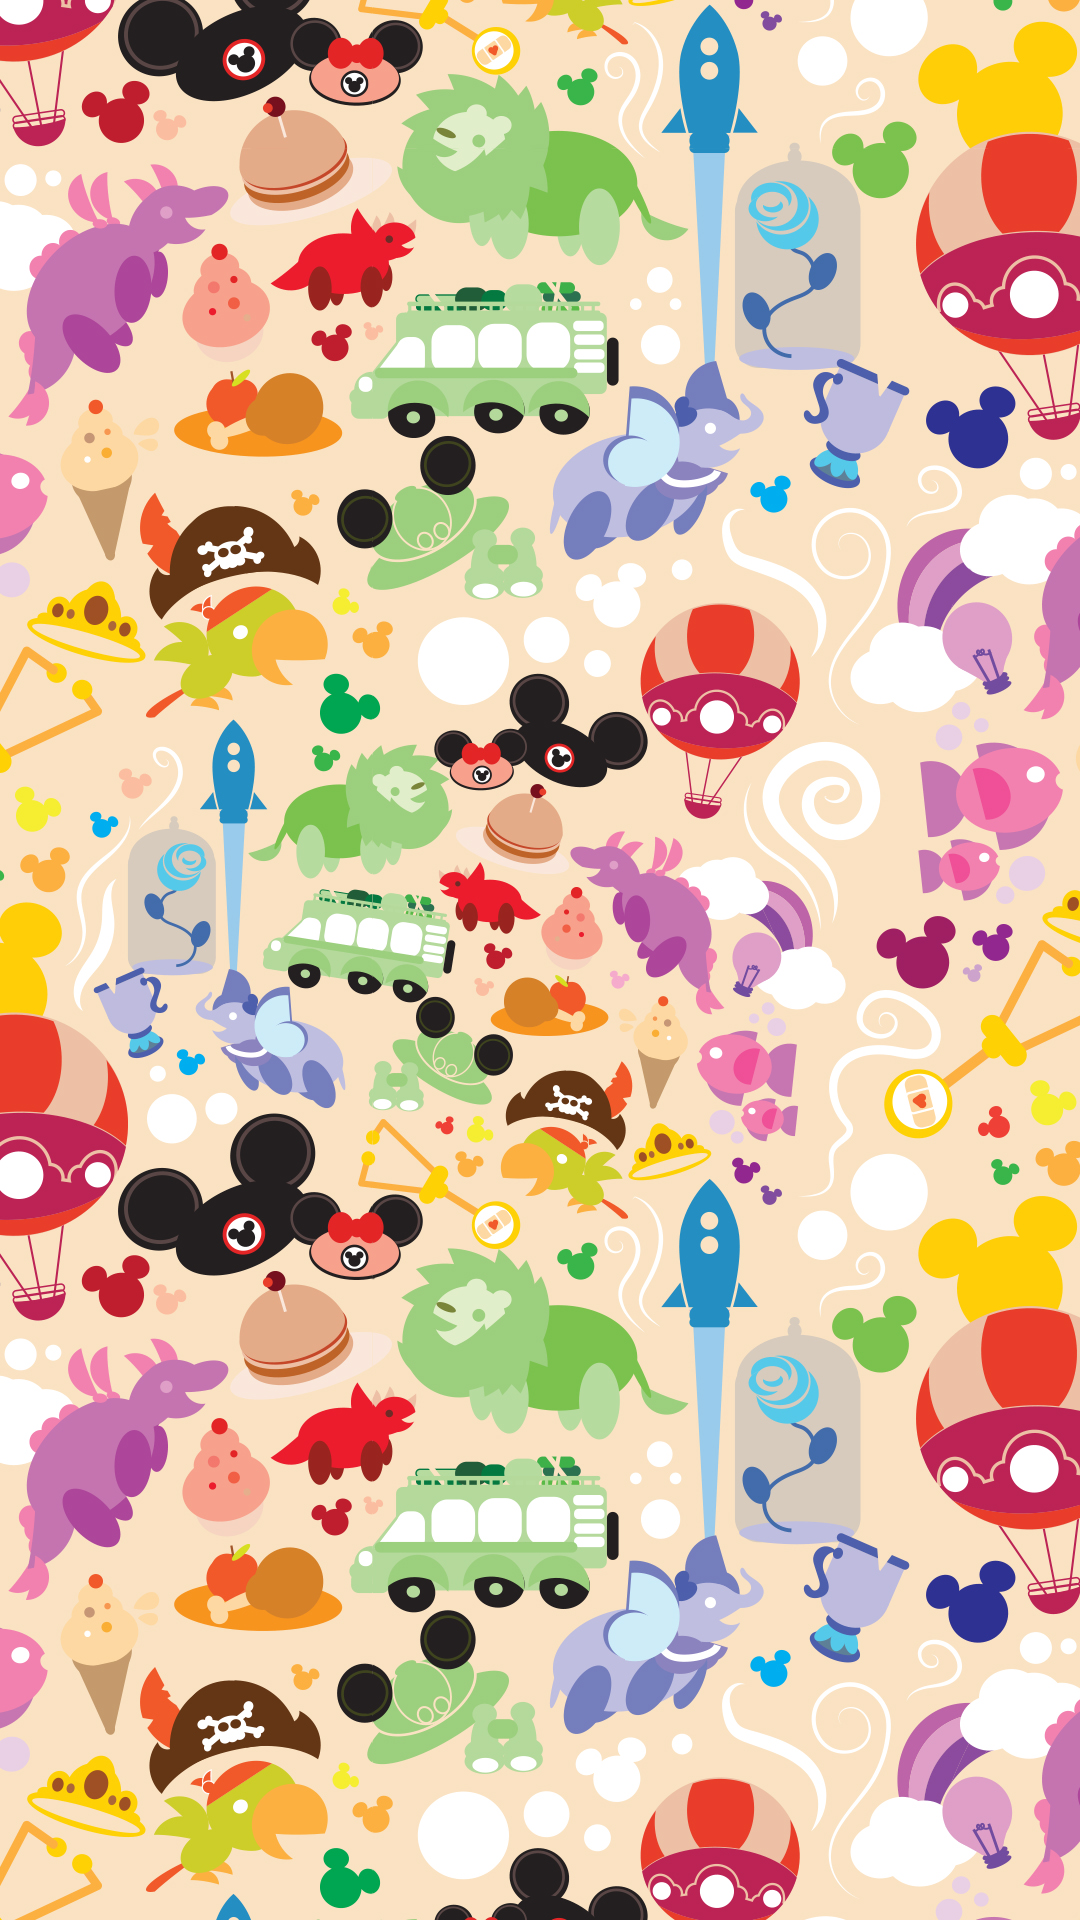 Cute Disney Wallpaper For Iphone - impremedia.net